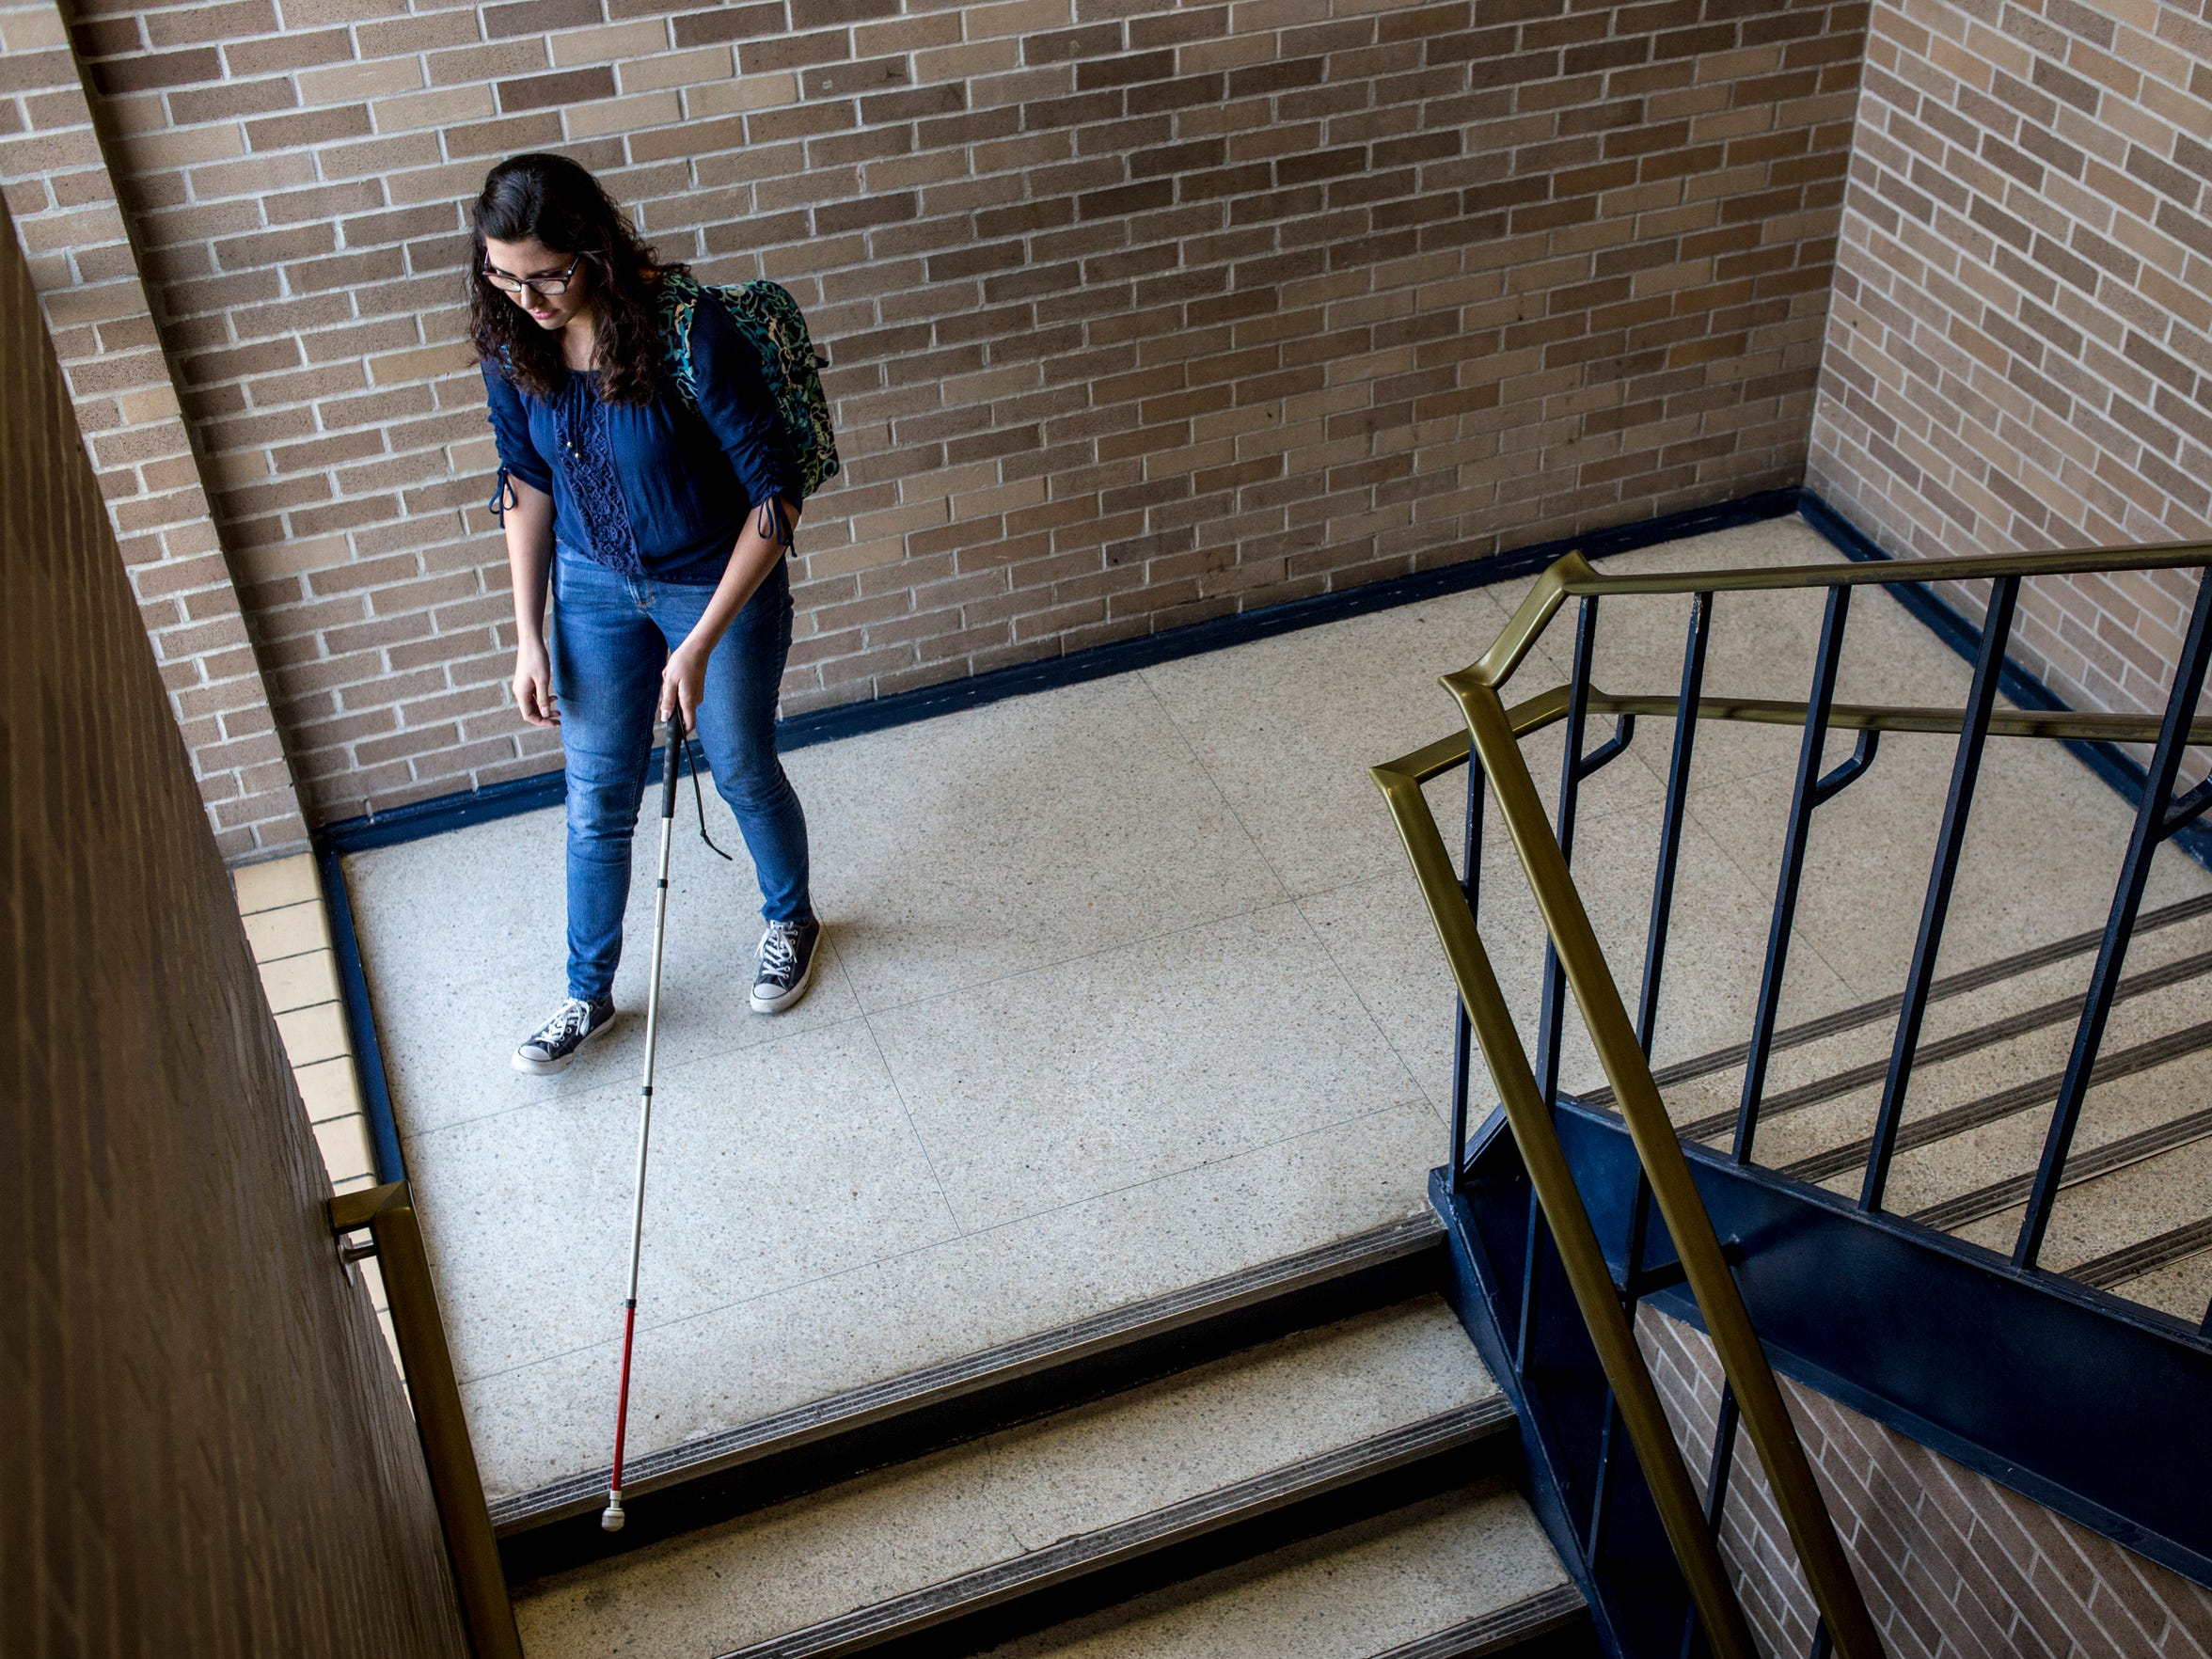 Alexandra Allers, 16, uses a cane to navigate down a stairwell between classes Nov. 18, 2016 at Port Huron Northern High School.